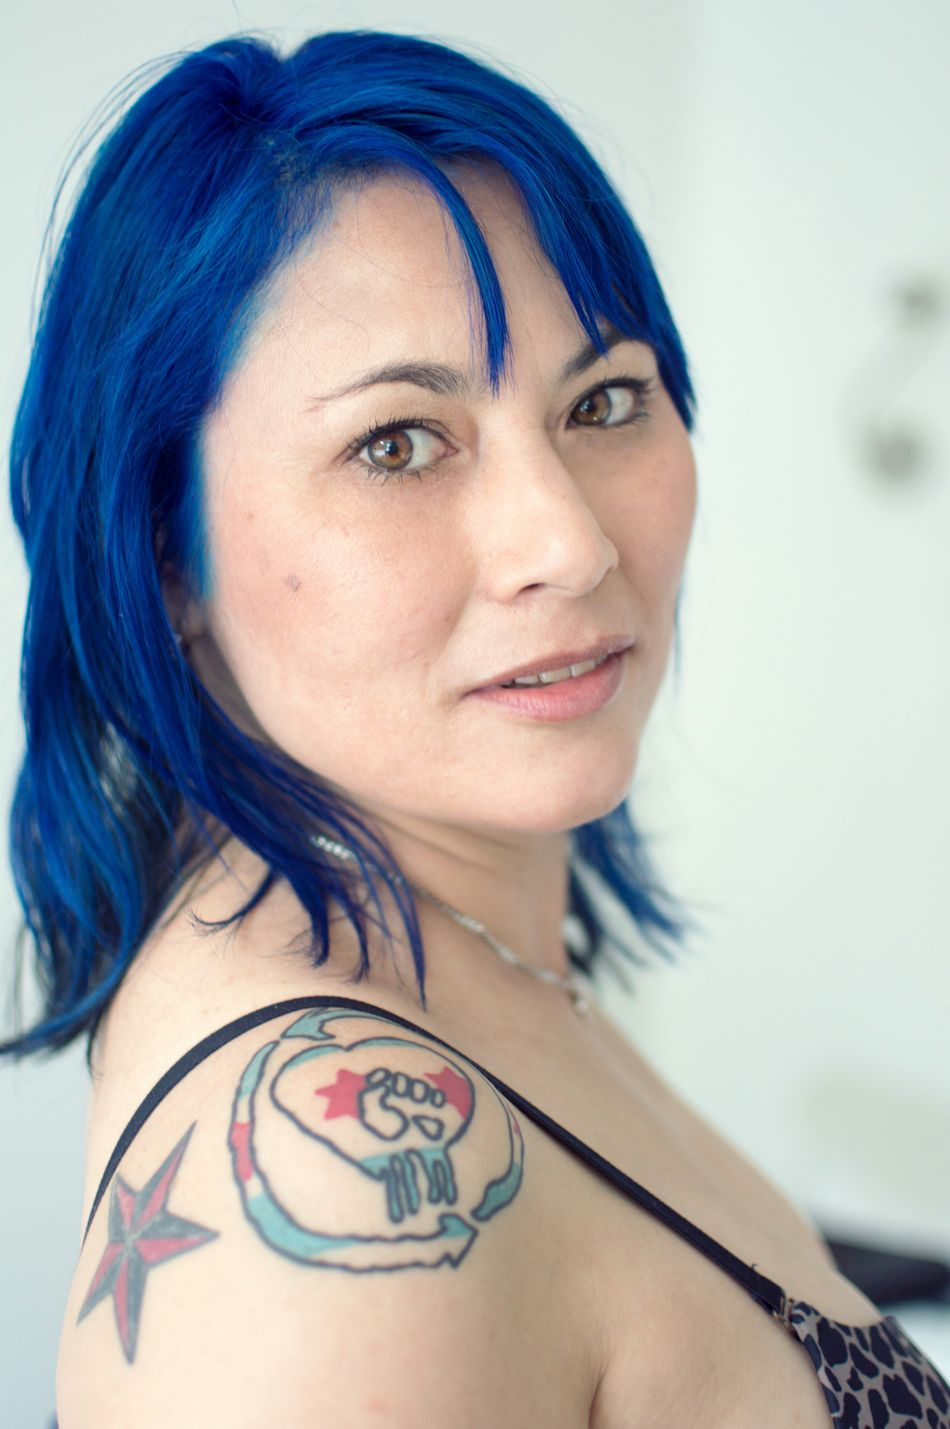 "The lovely Kimberly is her coming up set ""Azure"" live on SG in just over a month! SuicideGirls Alternativemodel Gorgeous Girls With Tattoos Sgaustralia Blue Hair Portrait Sghopeful"